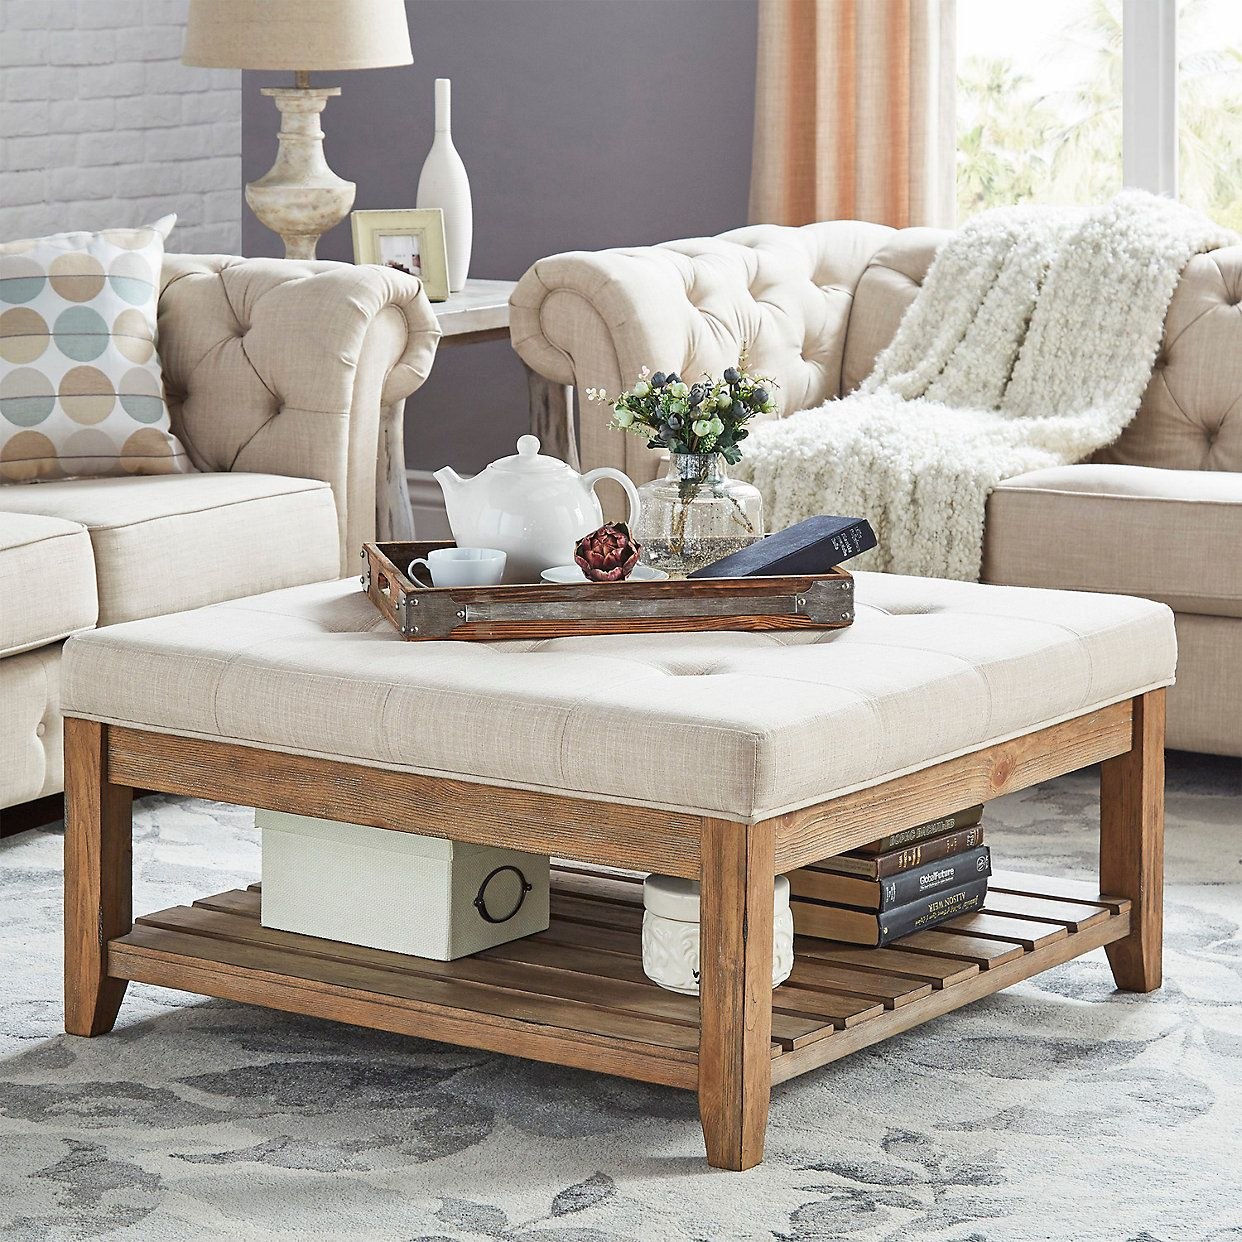 Homevance Contemporary Tufted Upholstered Coffee Table Kohls Upholstered Coffee Tables Coffee Table Living Room Decor Rustic [ 1242 x 1242 Pixel ]